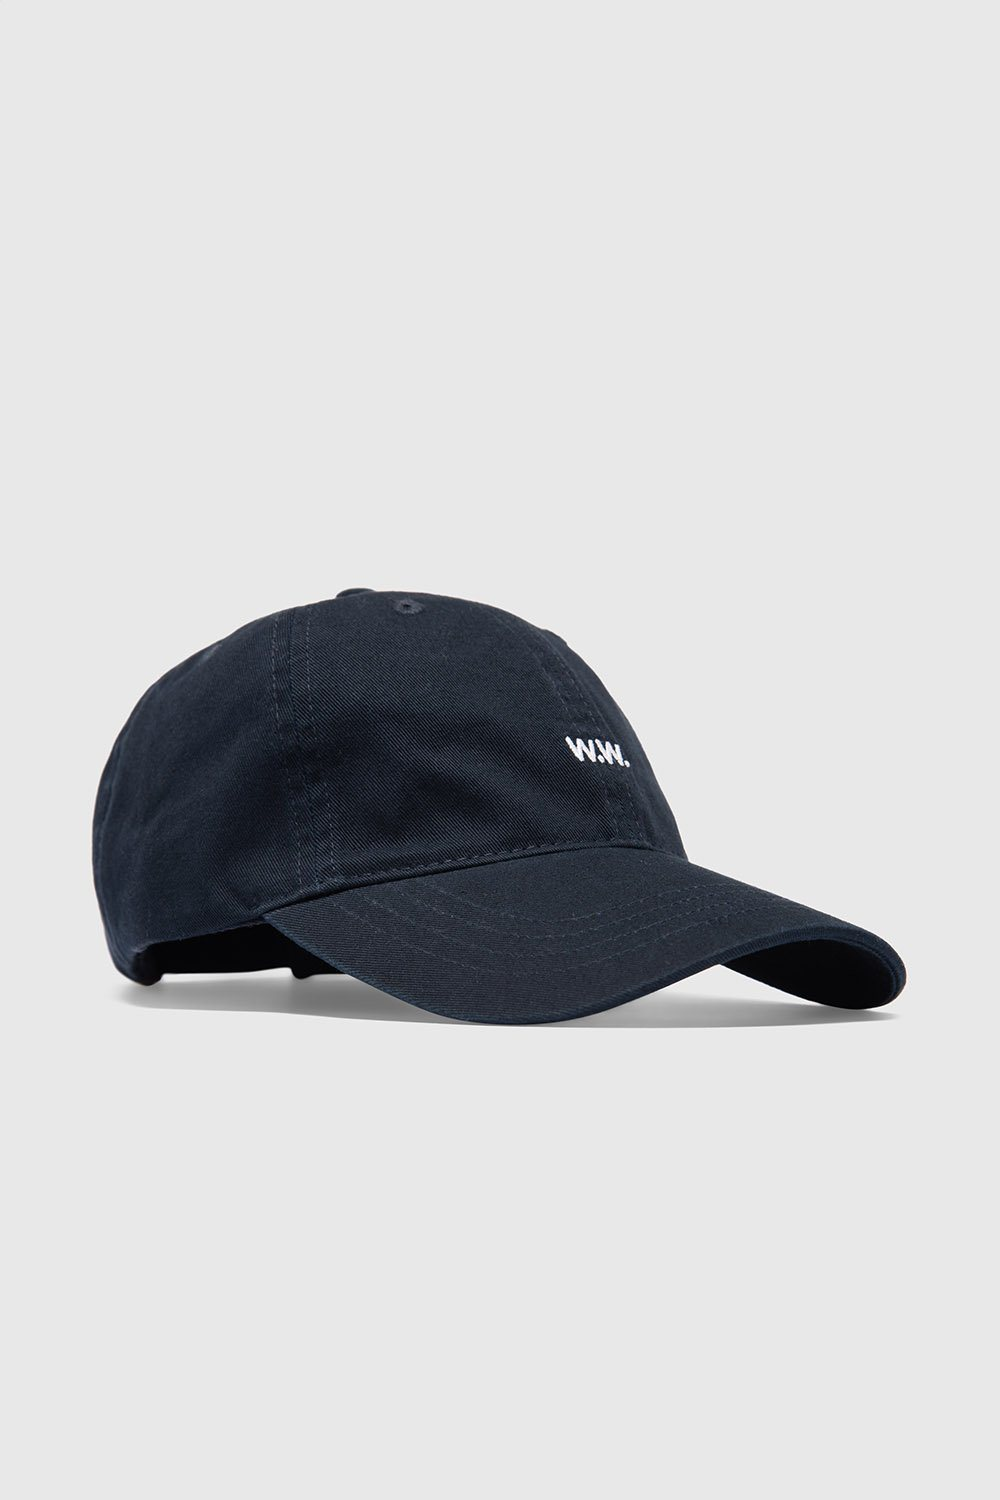 Wood Wood - Low Profile Cap - navy Caps Wood Wood